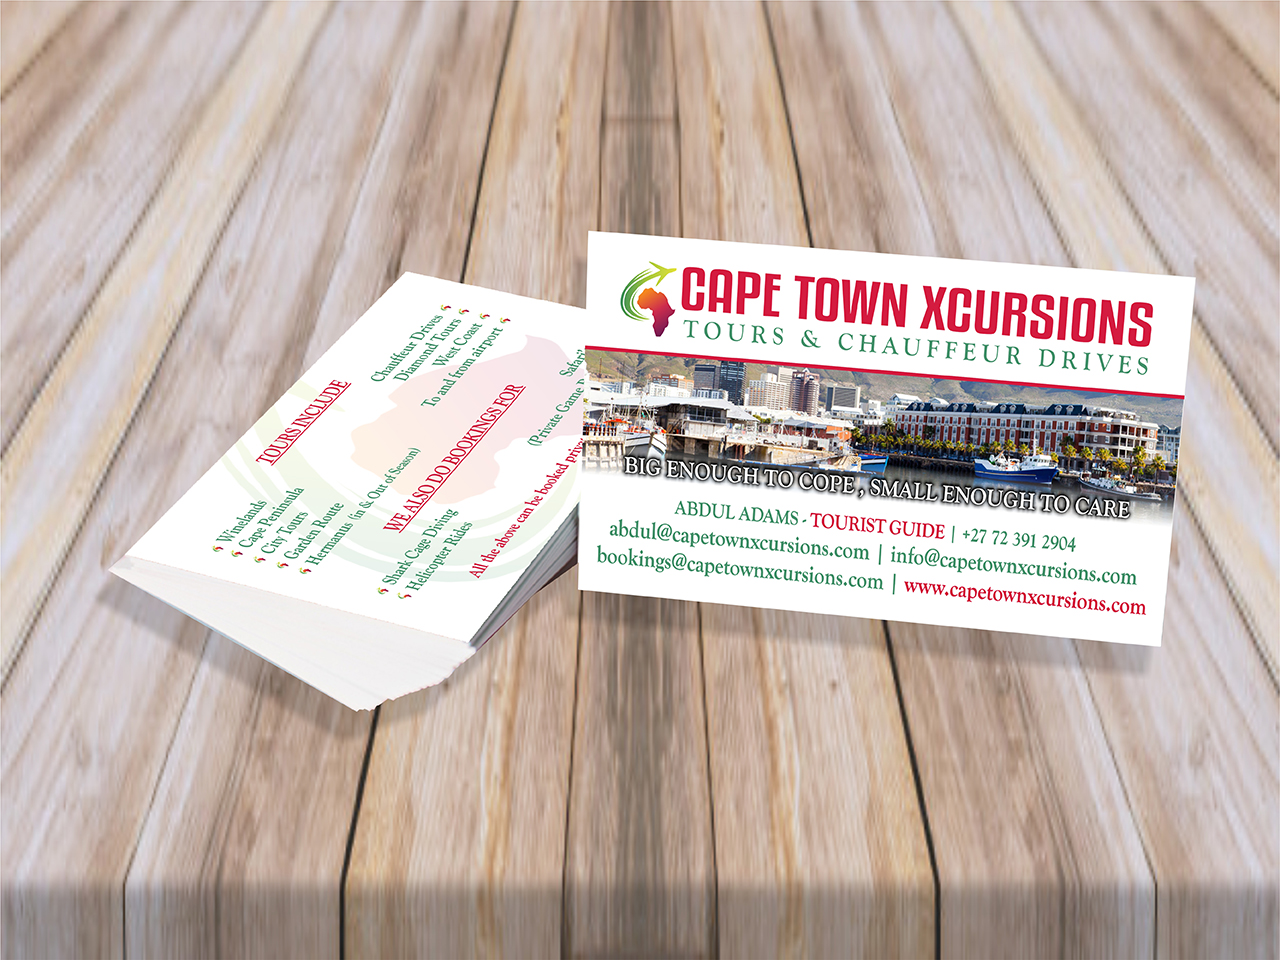 Cape Town Xcursions Business Cards